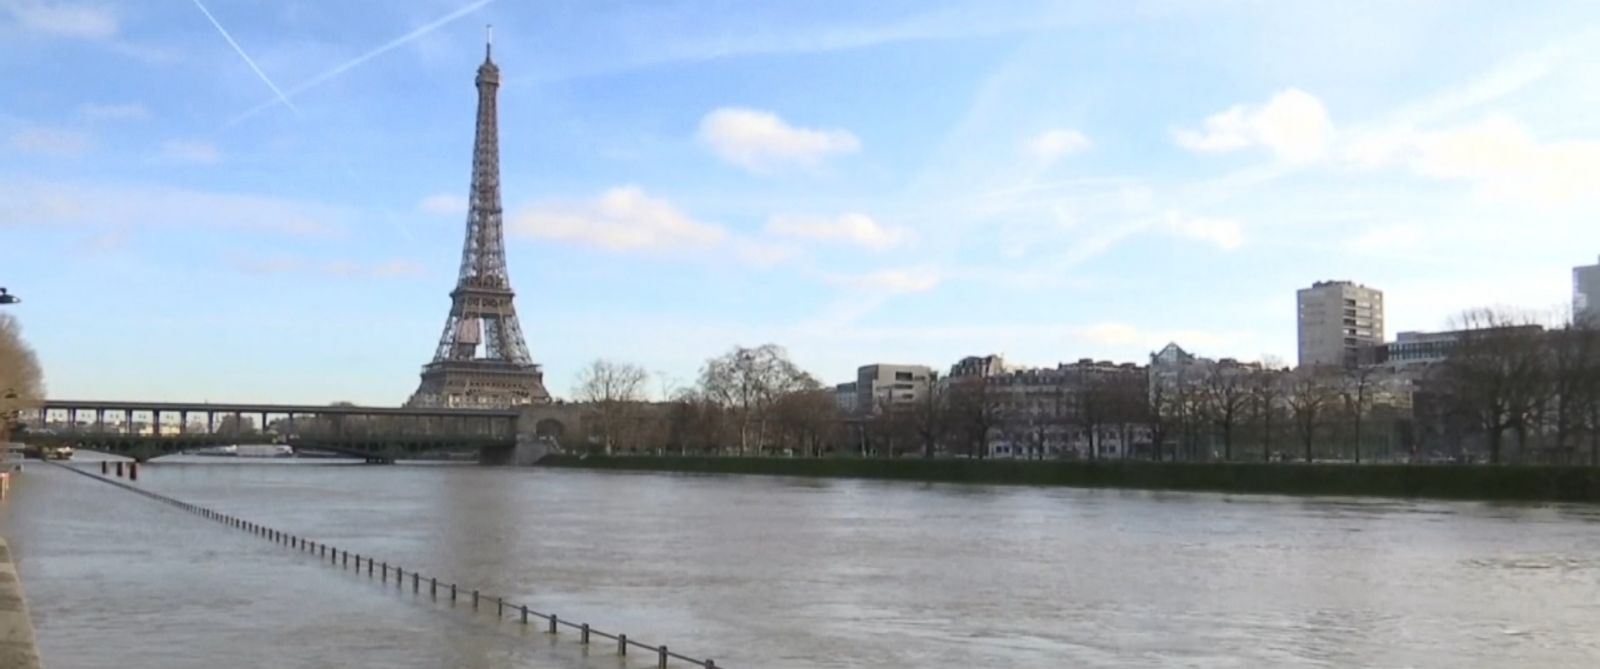 Paris is under siege from near record-breaking rain.